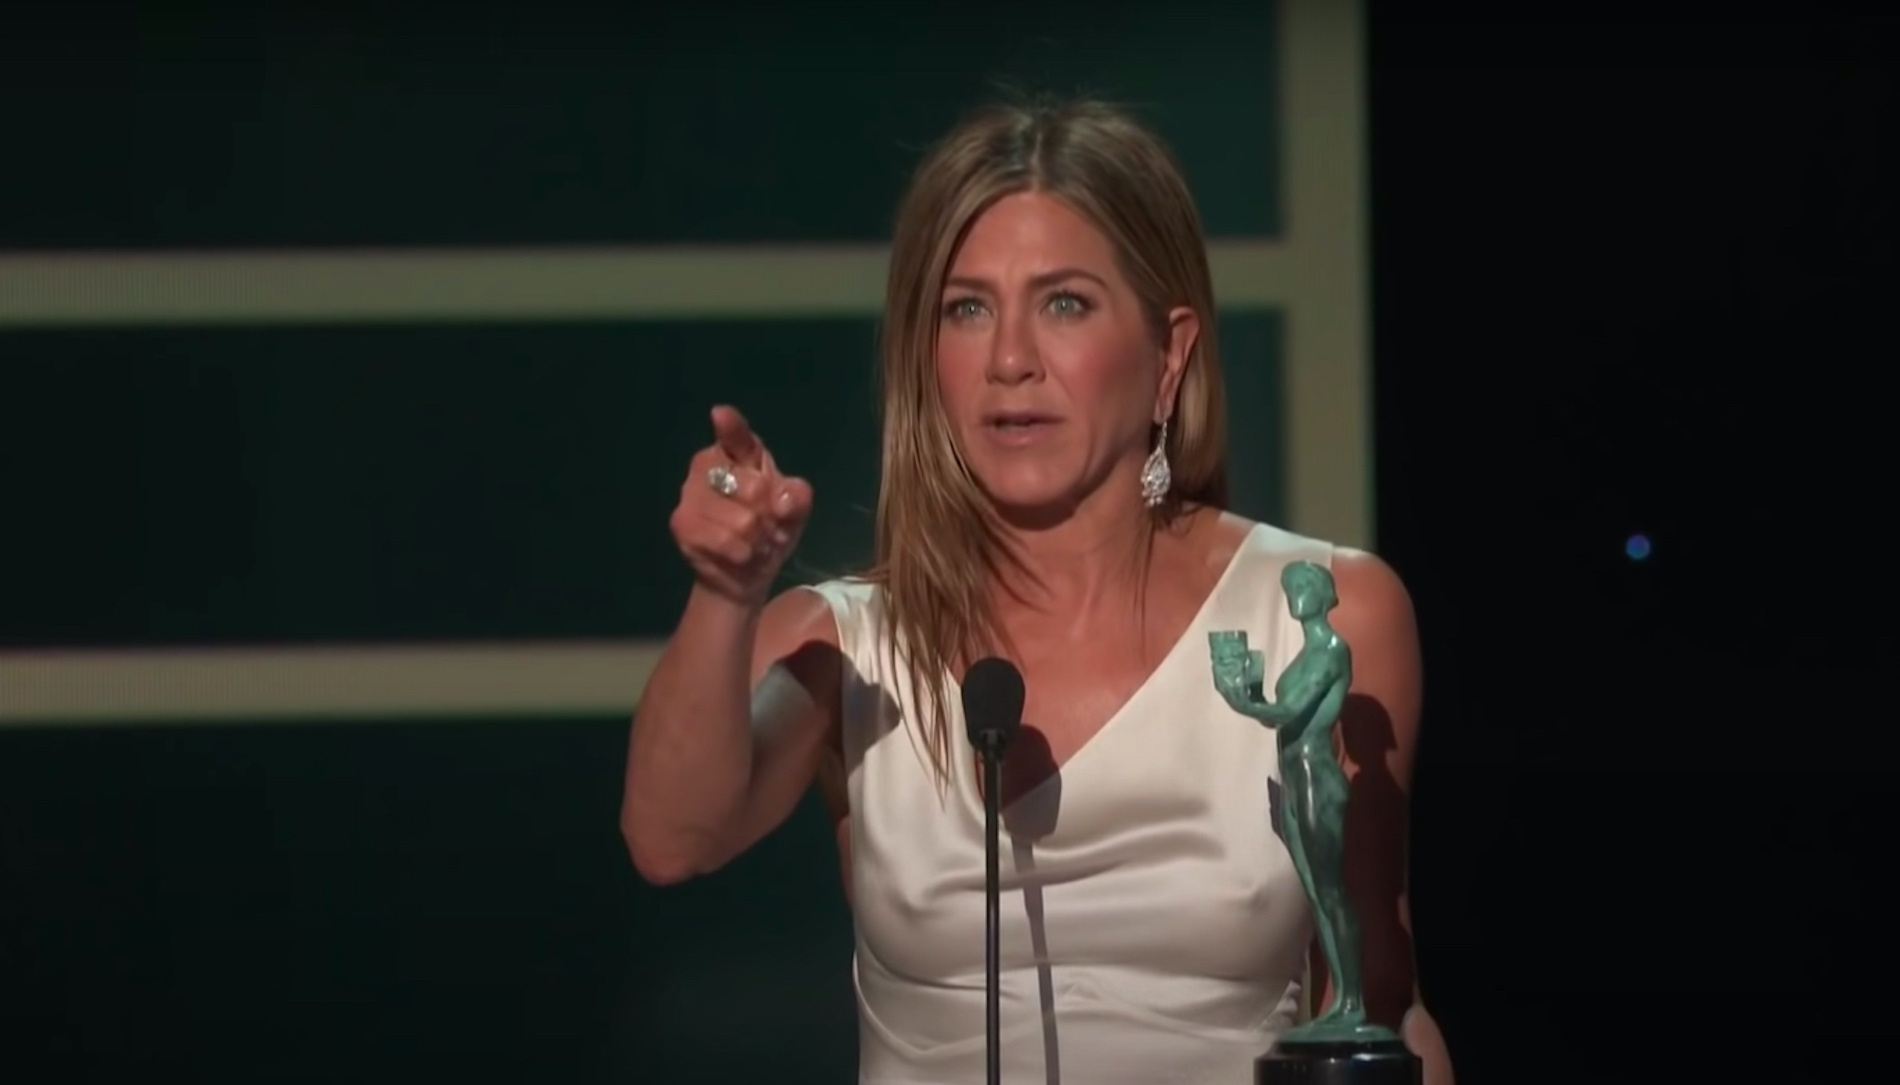 The 7 Best Awards Acceptance Speeches of the Past Year